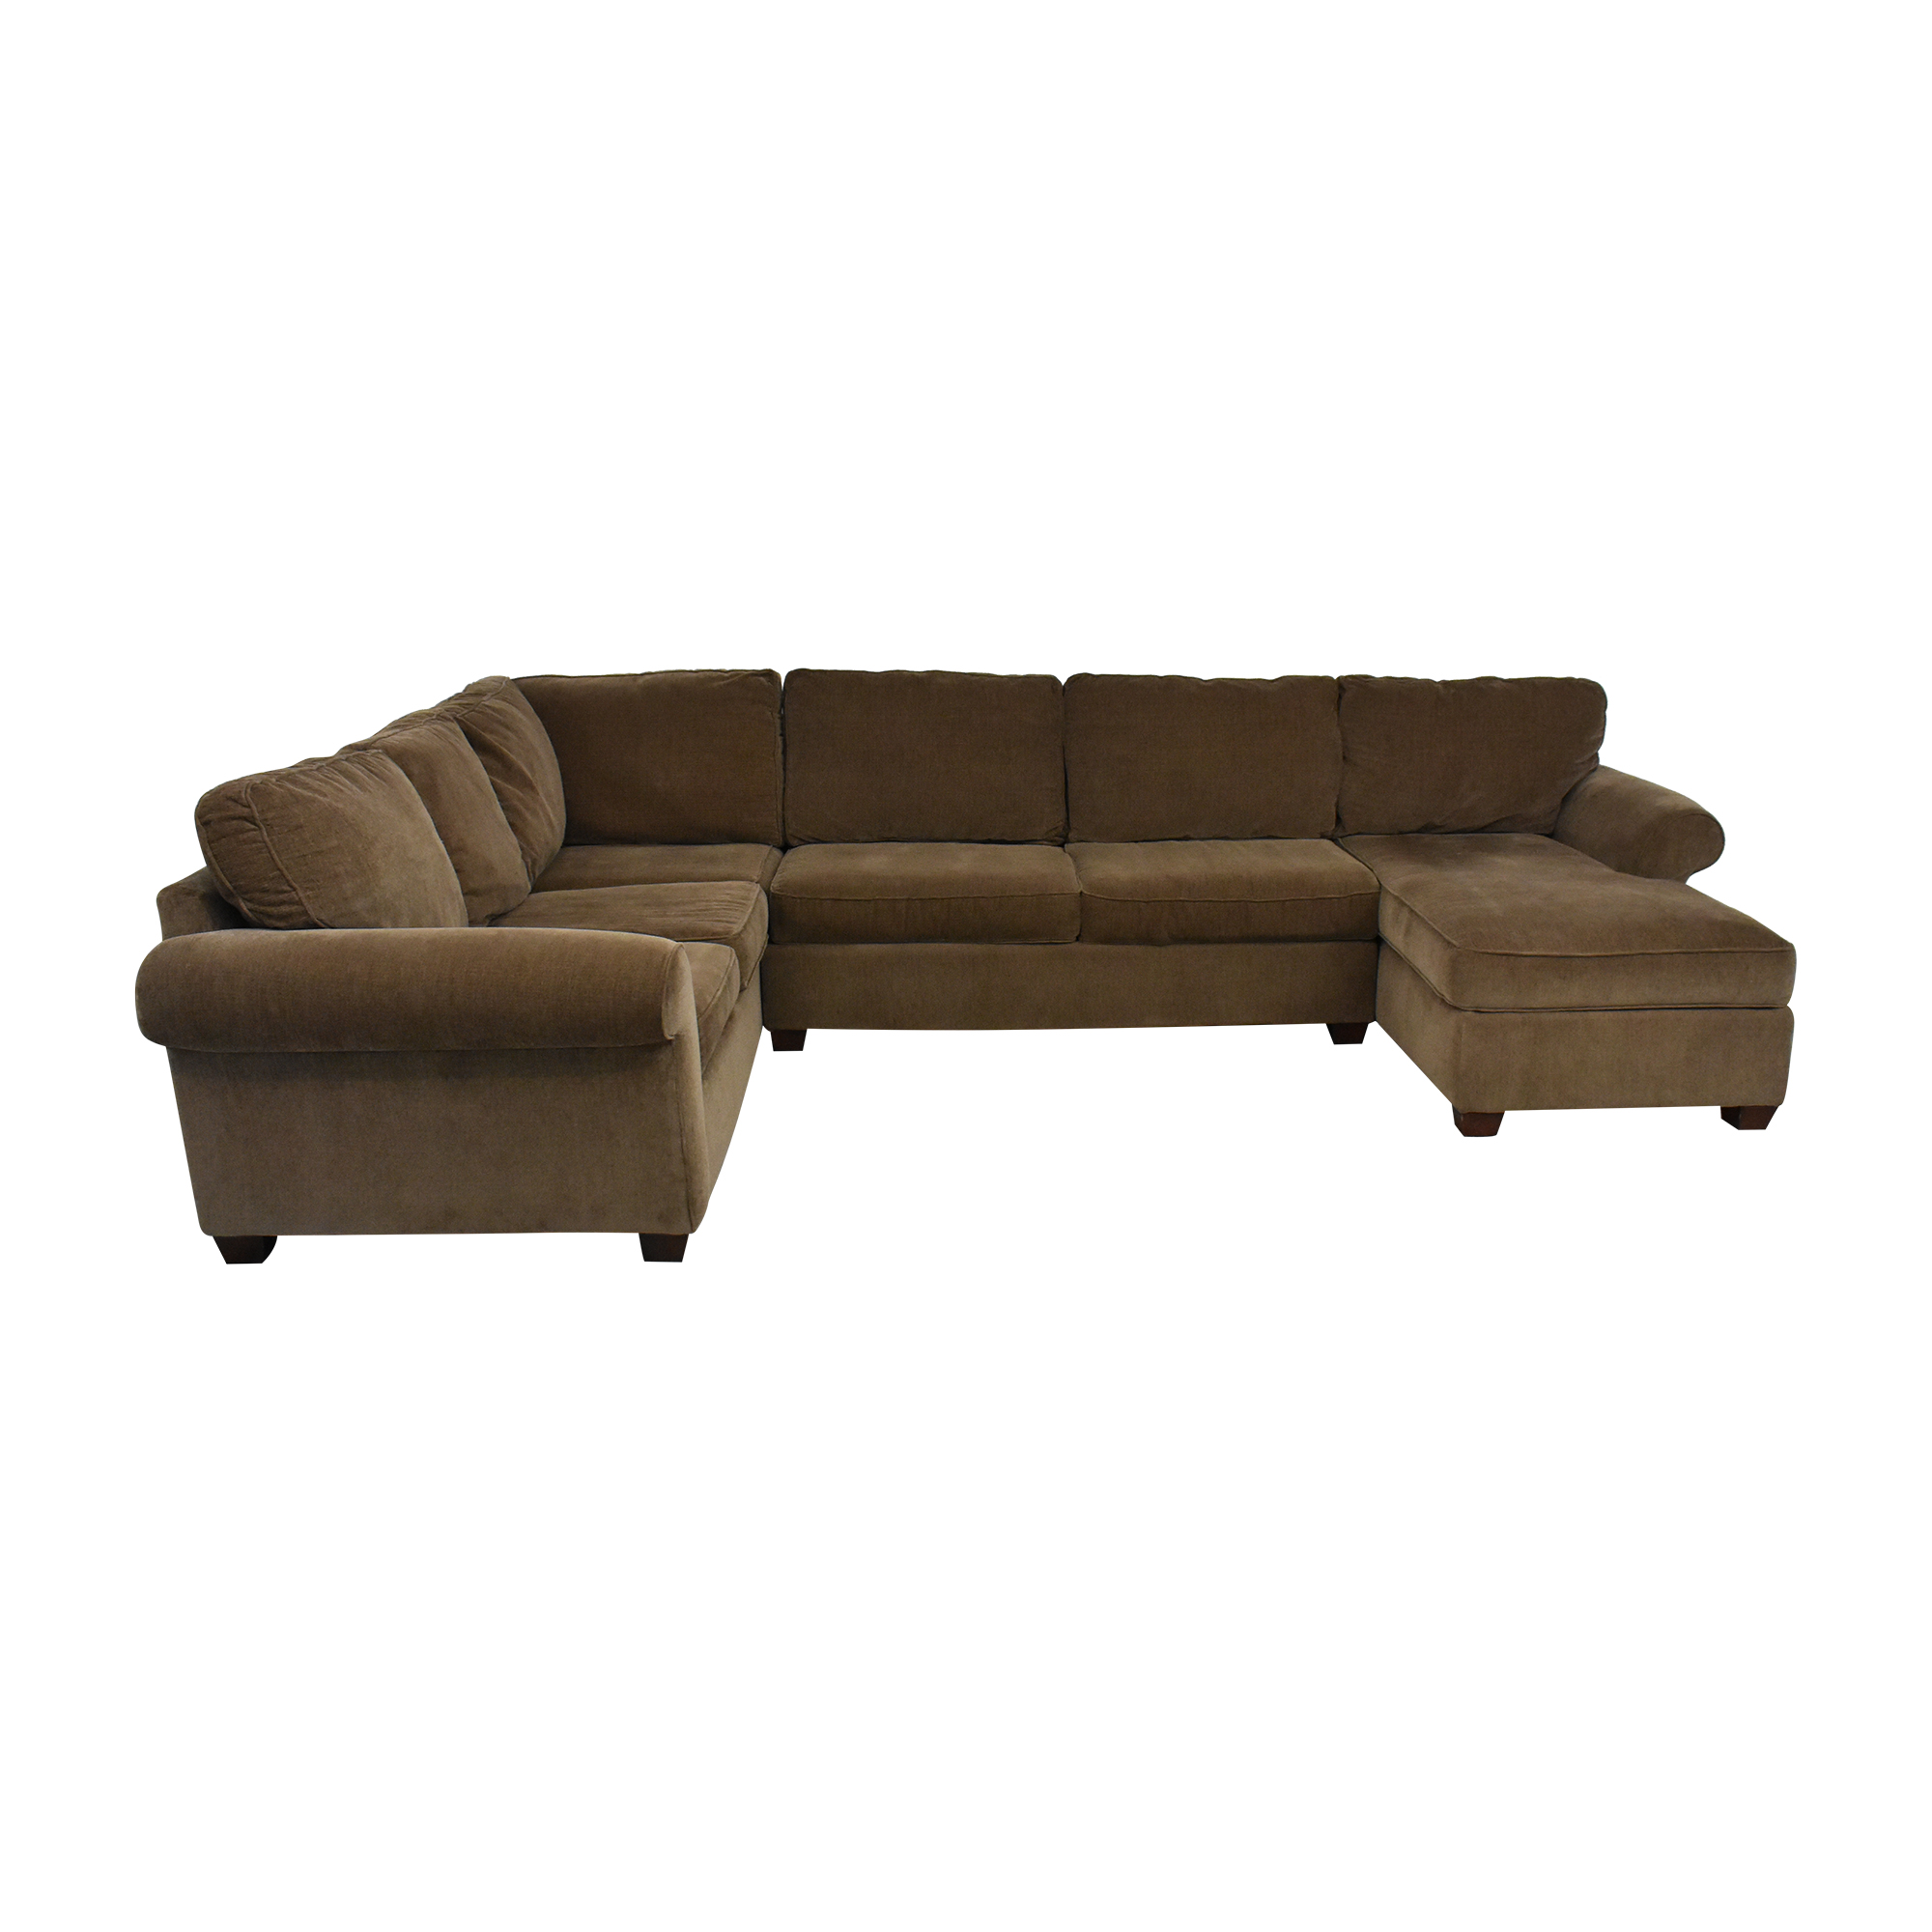 Raymour & Flanigan Raymour & Flanigan Sectional Sofa with Chaise price